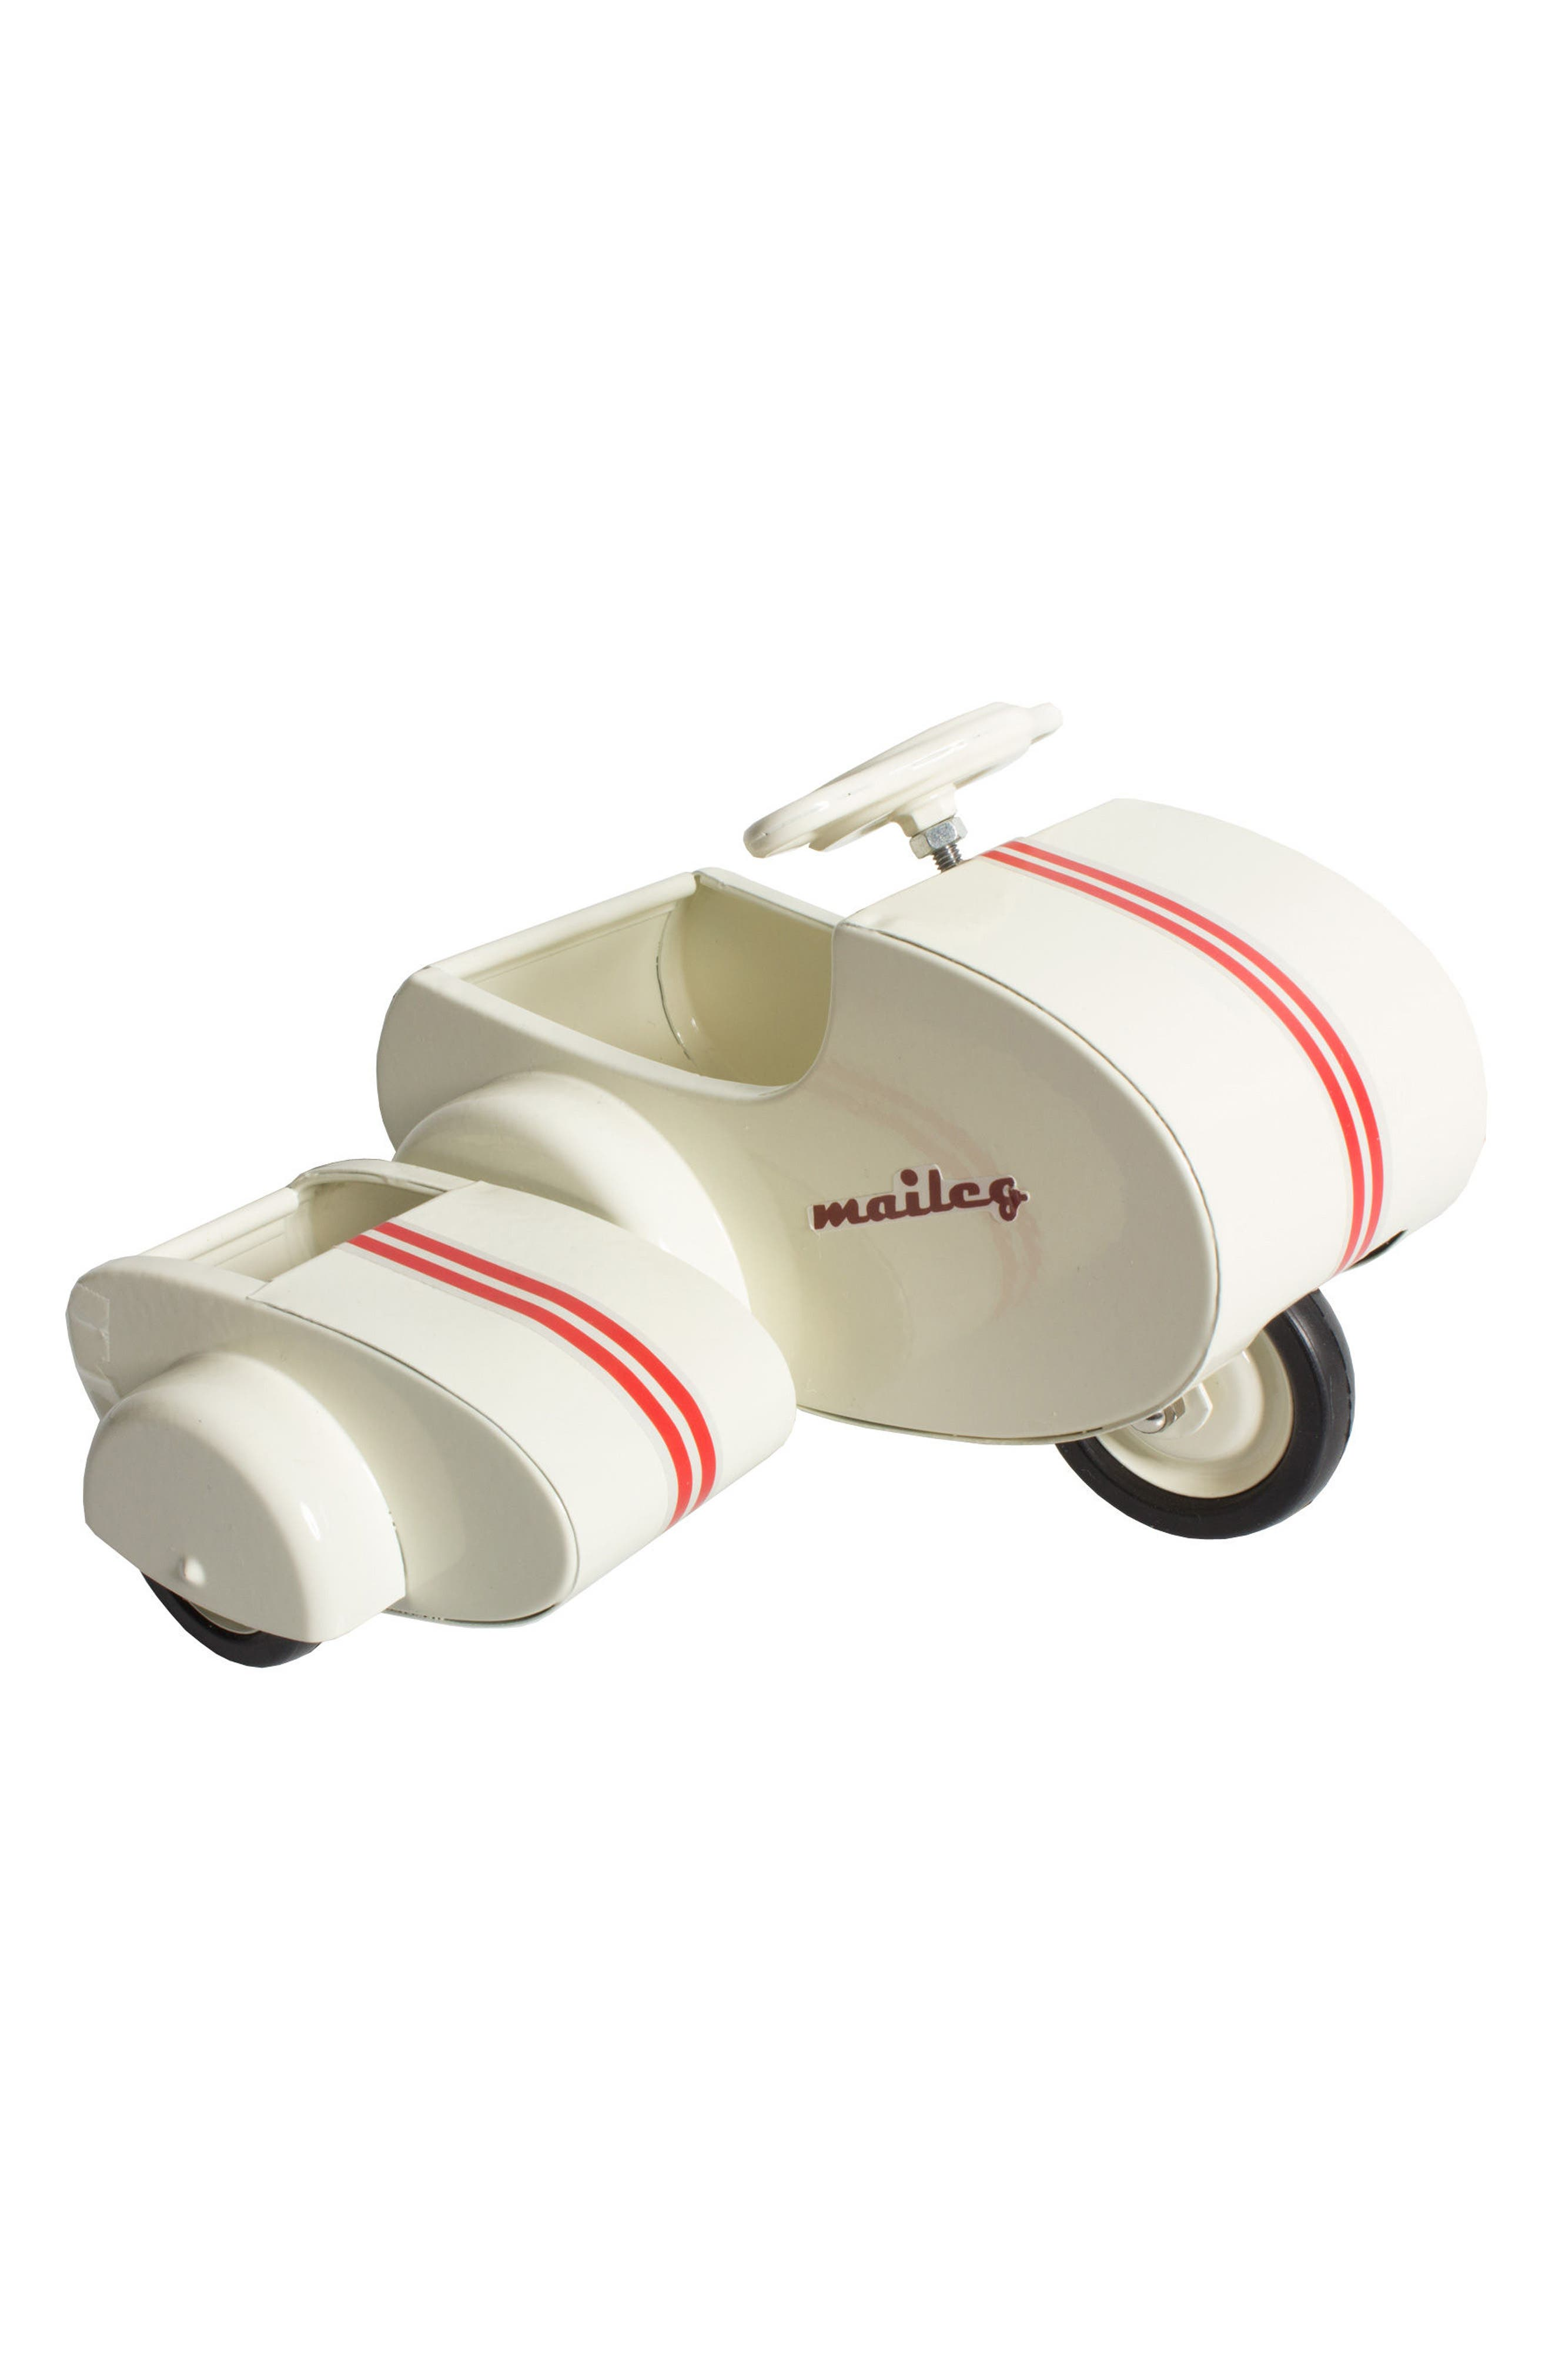 Mini Mouse Scooter Toy with Side Car,                             Main thumbnail 1, color,                             WHITE